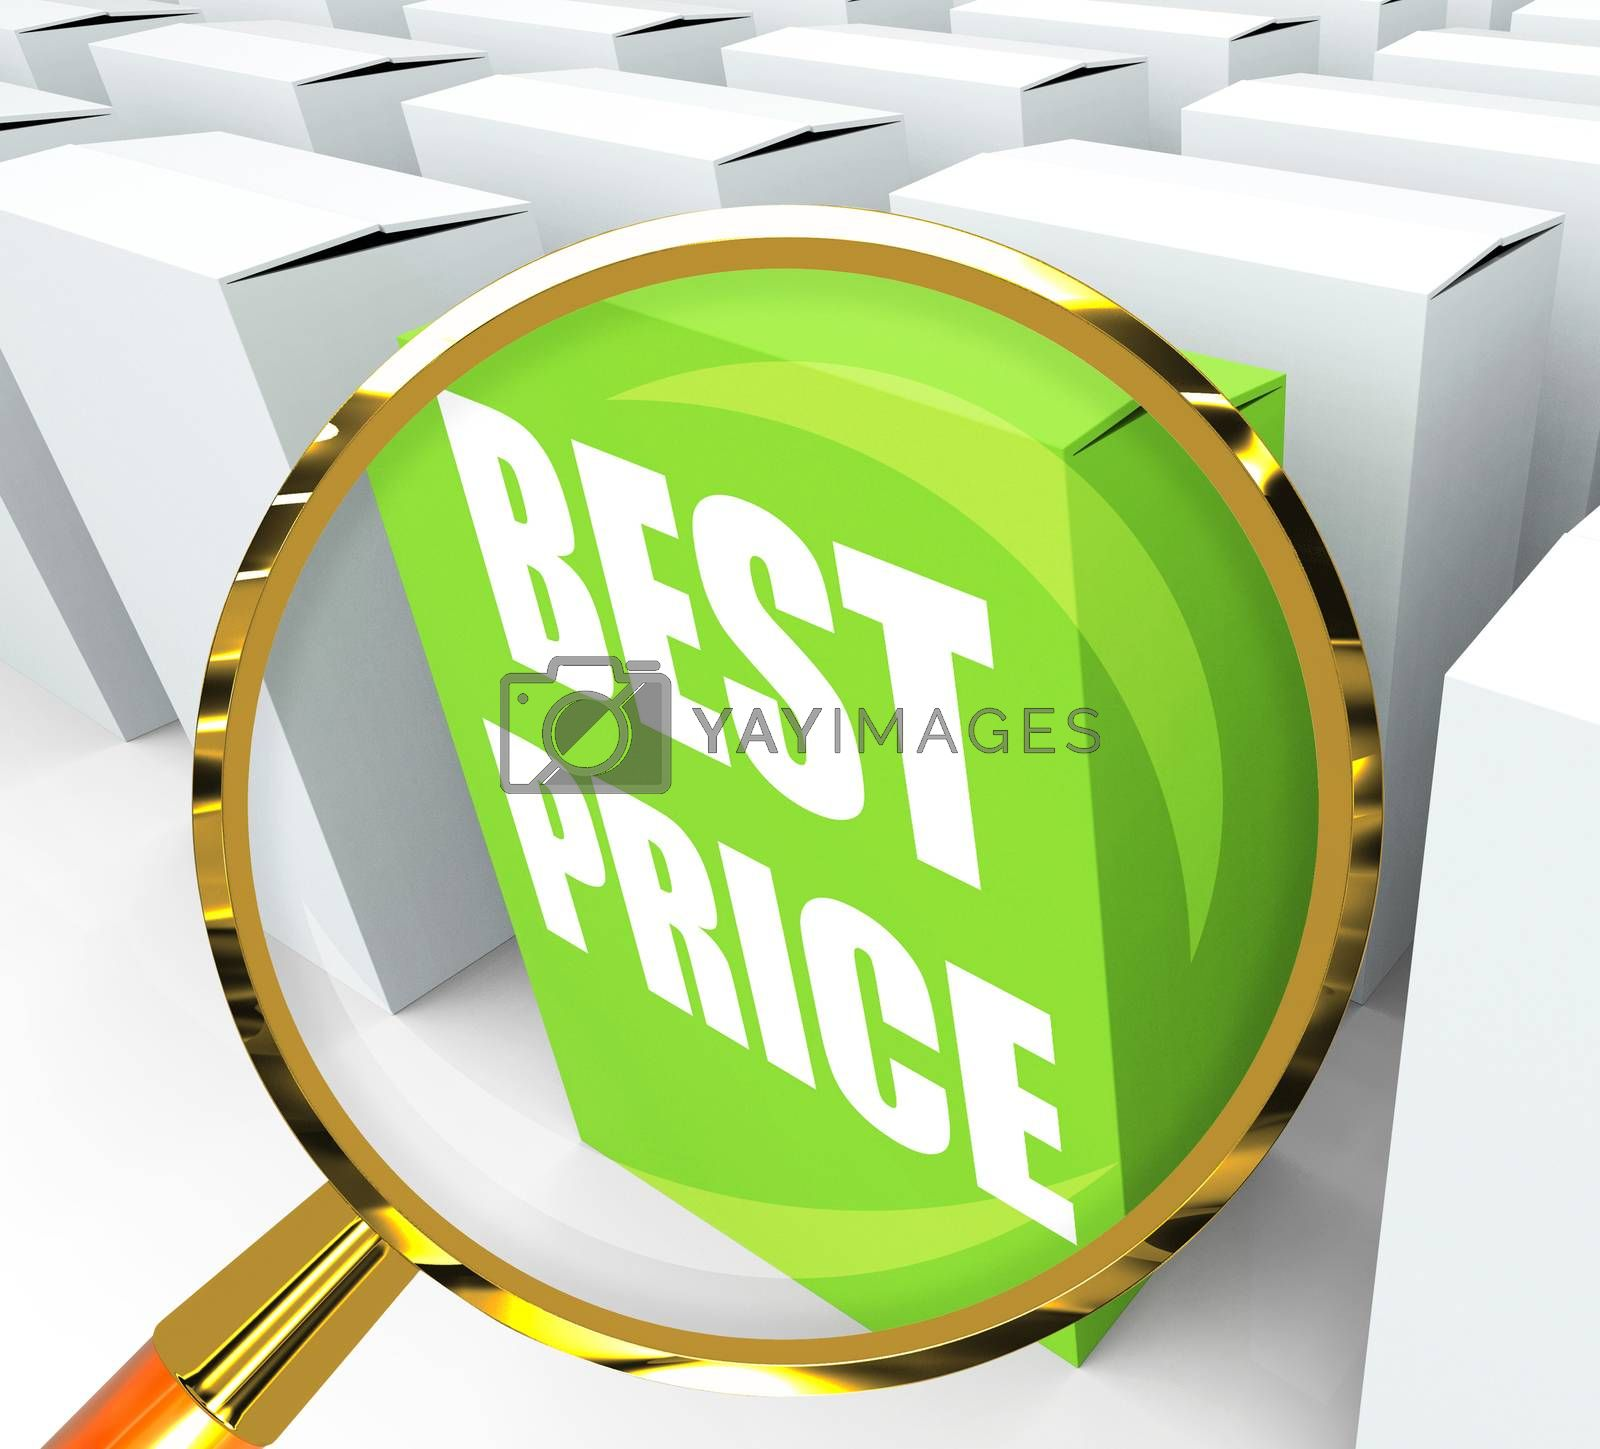 Best Price Packet Represents Bargains and Discounts by stuartmiles